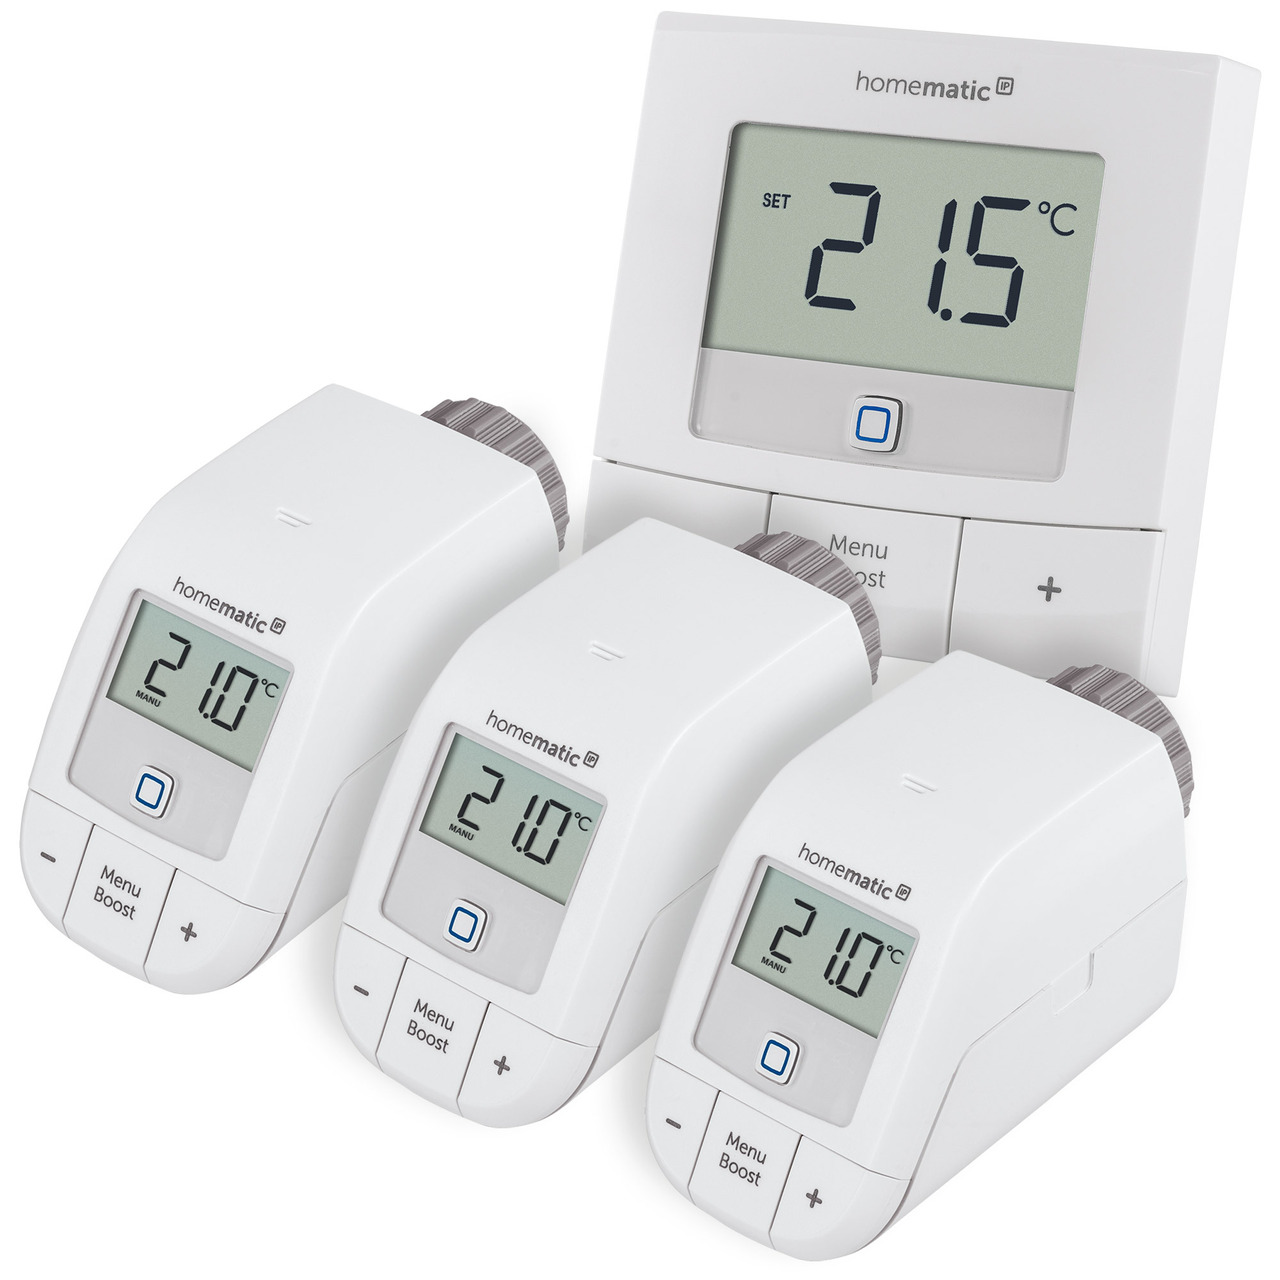 Homematic IP Smart Home Set Heizen Basic M mit 3x Heizkörperthermostat und 1x Wandthermostat